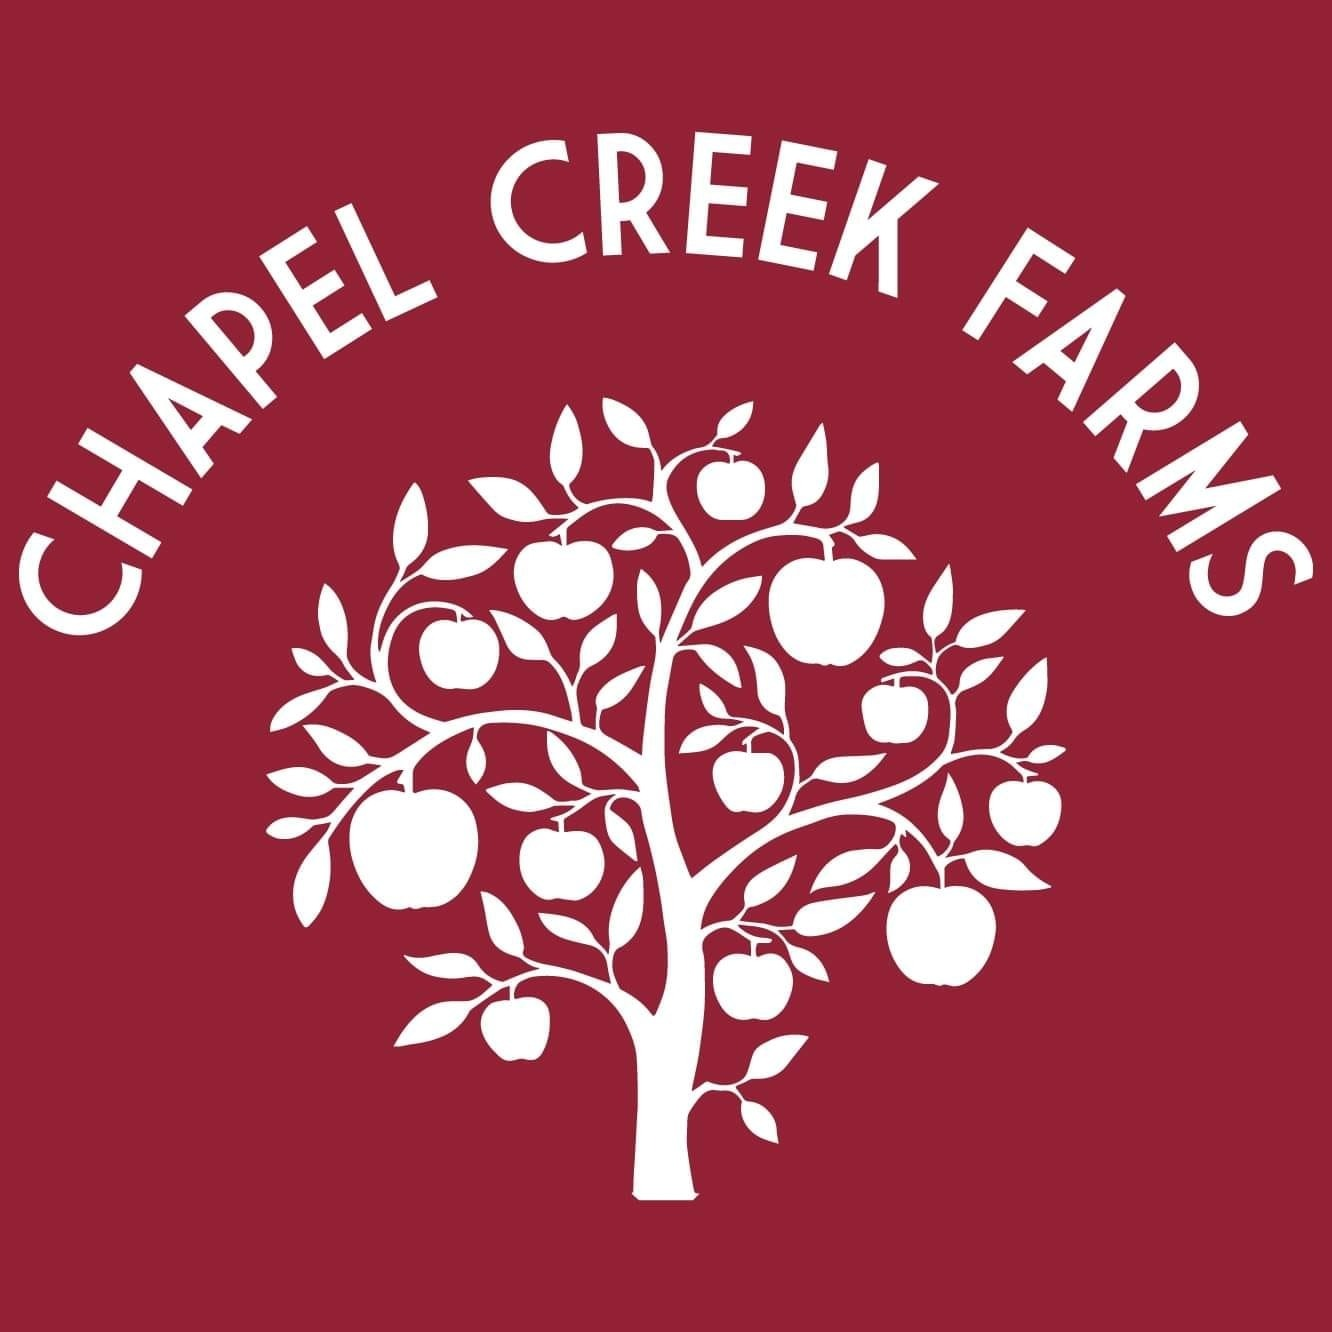 Chapel Creek Farm Logo